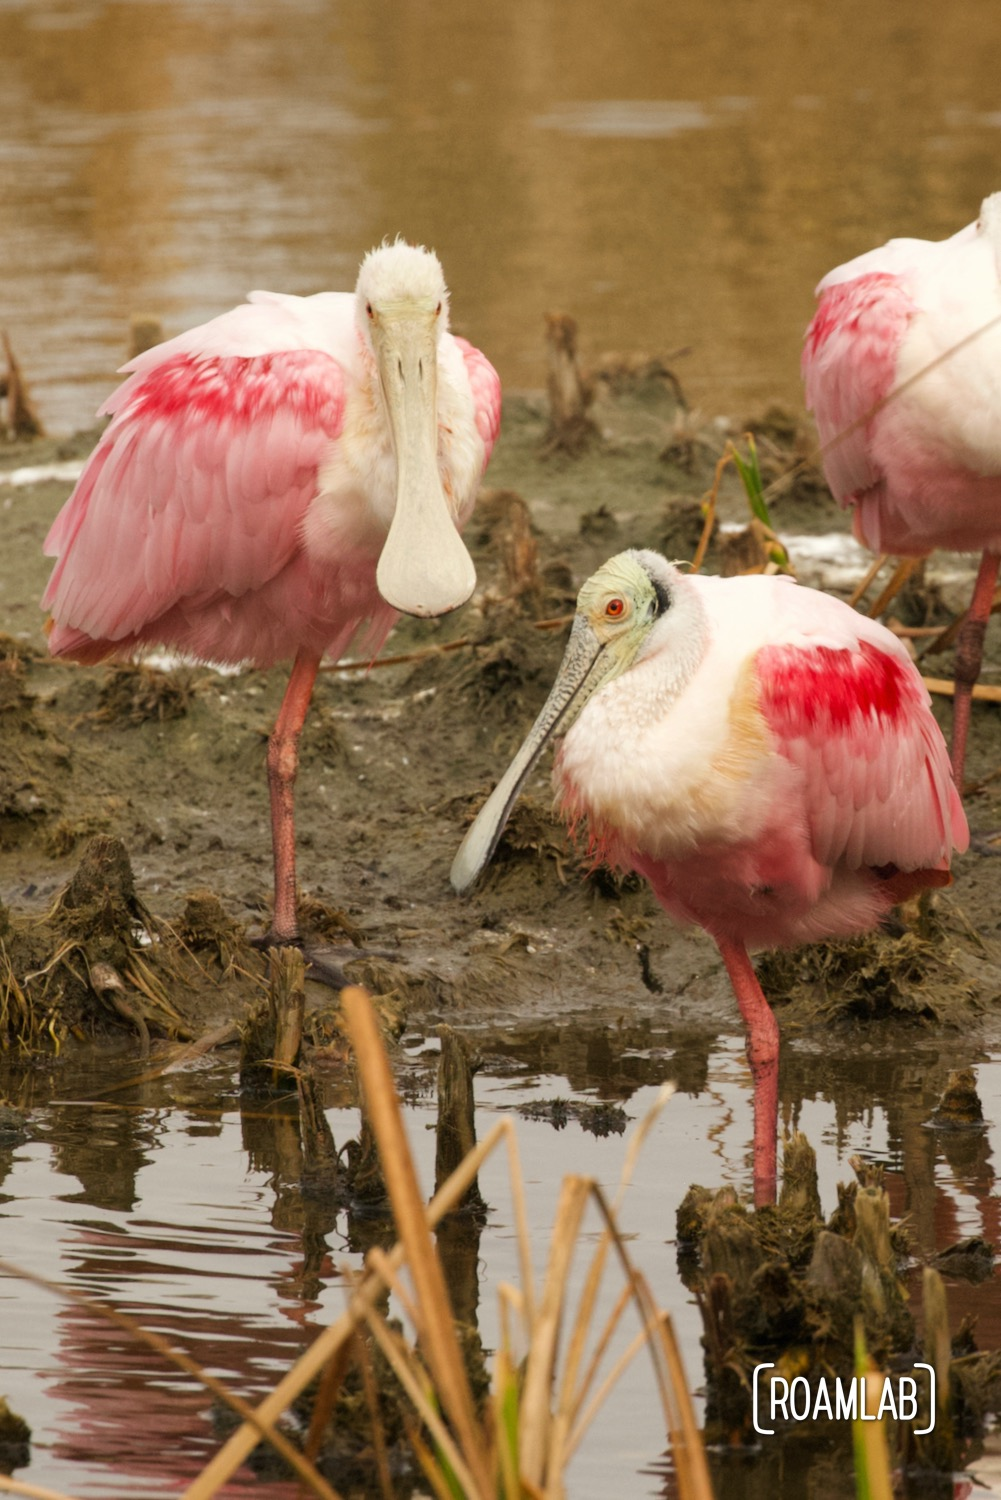 Roseate spoonbill (Platalea ajaja) congregatnig on a patch of mud at the South Padre Island Birding and Nature Center